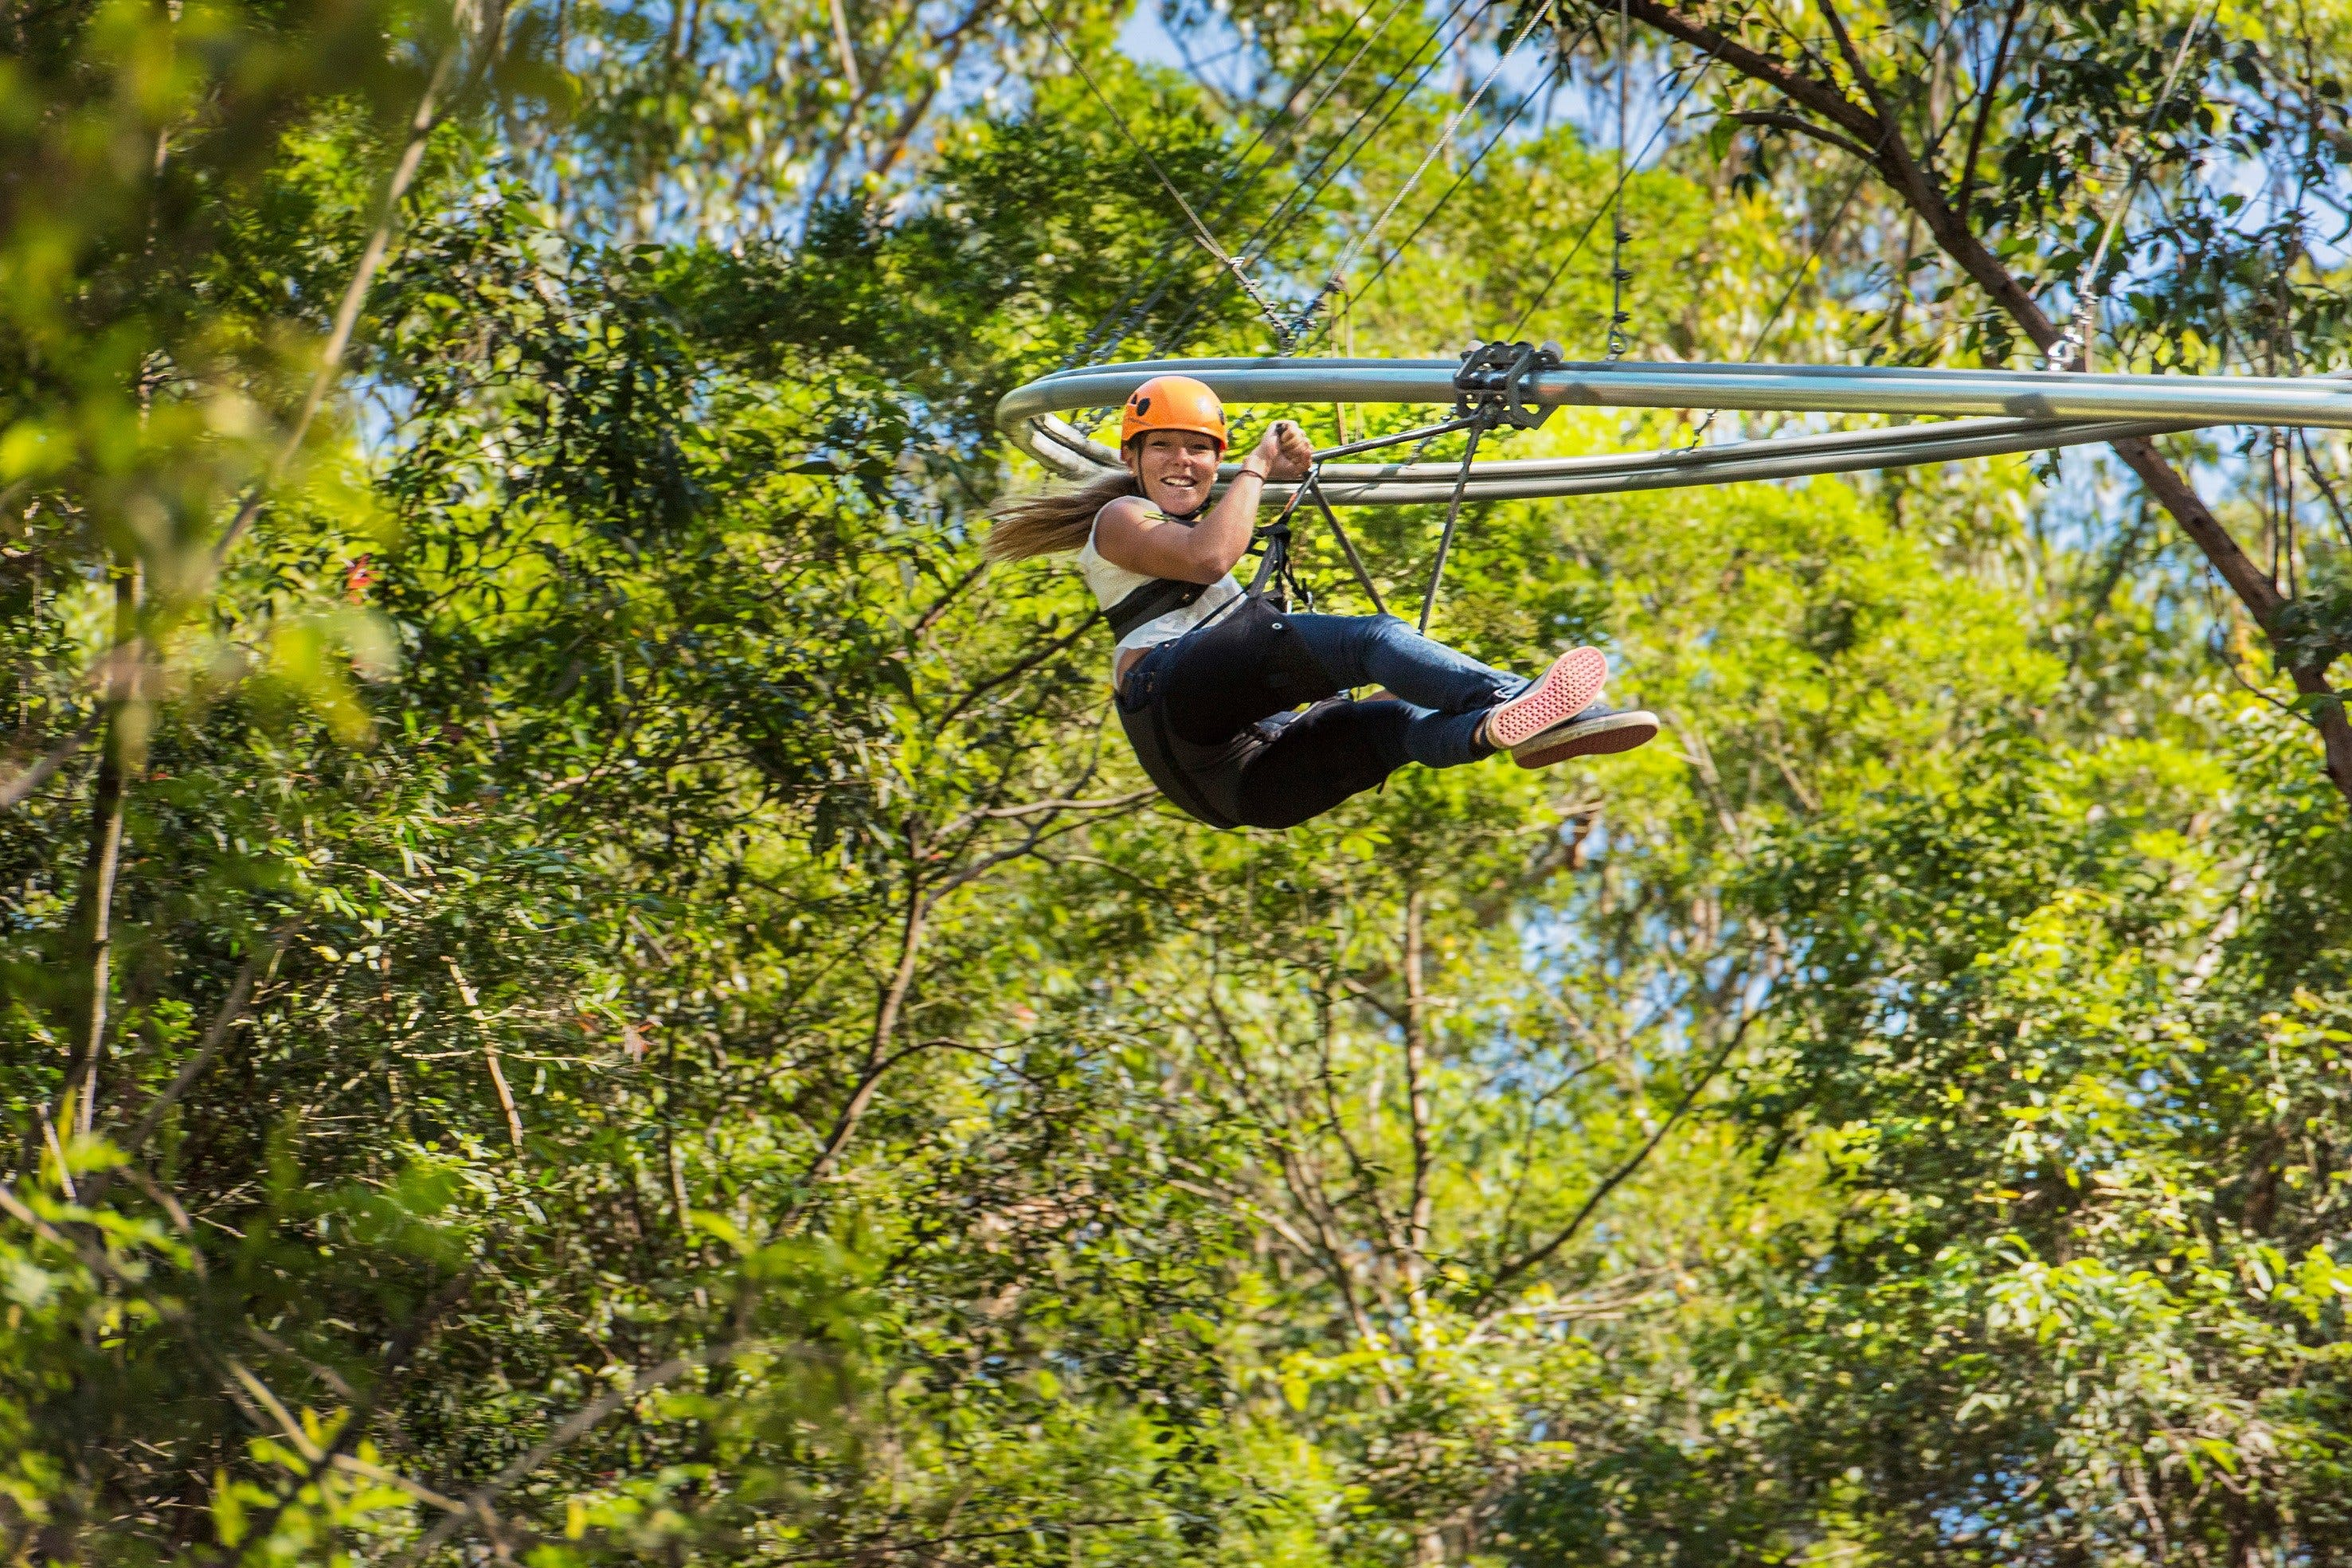 TreeTop Crazy Rider - Accommodation Perth